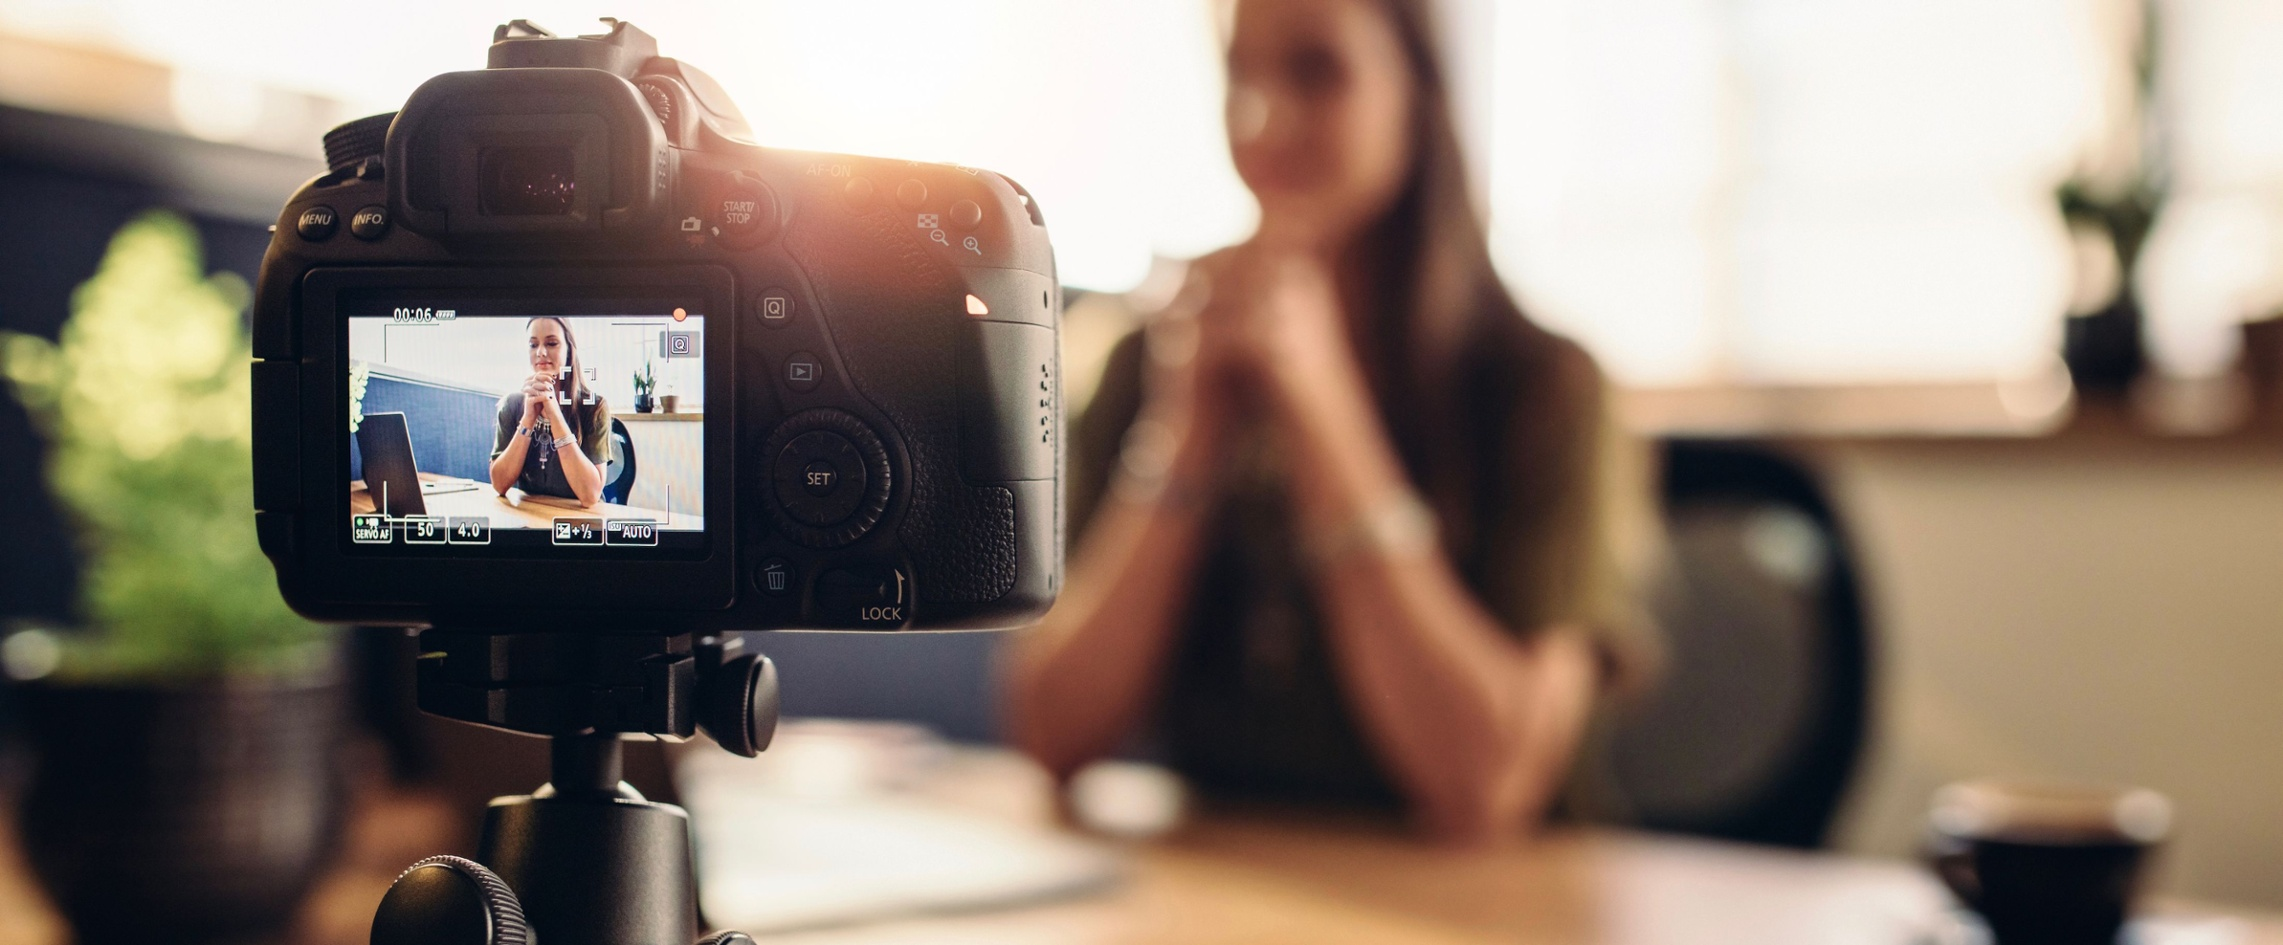 How We Increased Sales Opportunities 4X With Video: A HubSpot Experiment